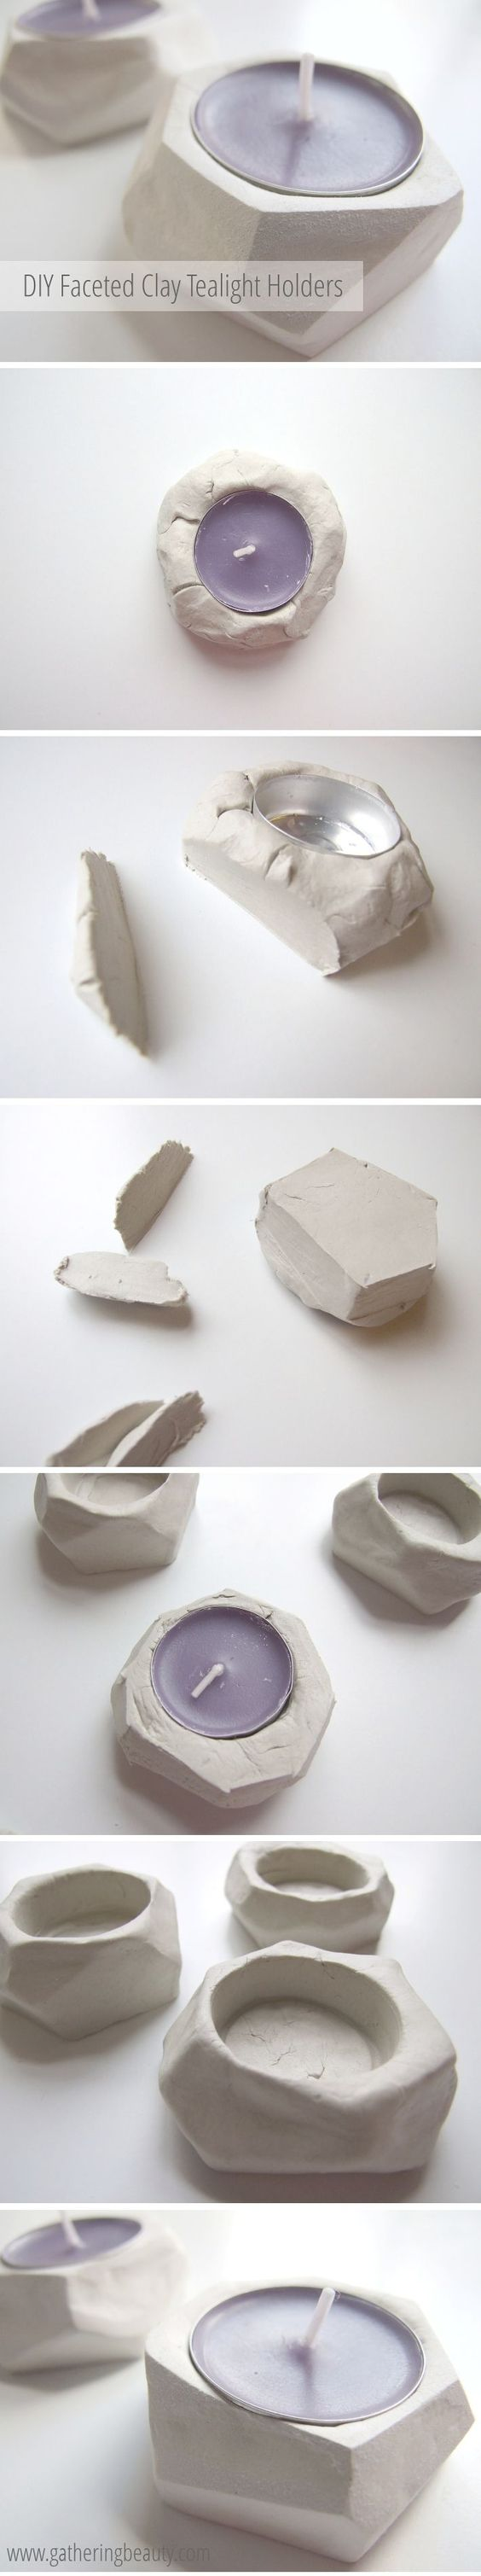 DIY Faceted Clay Tealight Holders.